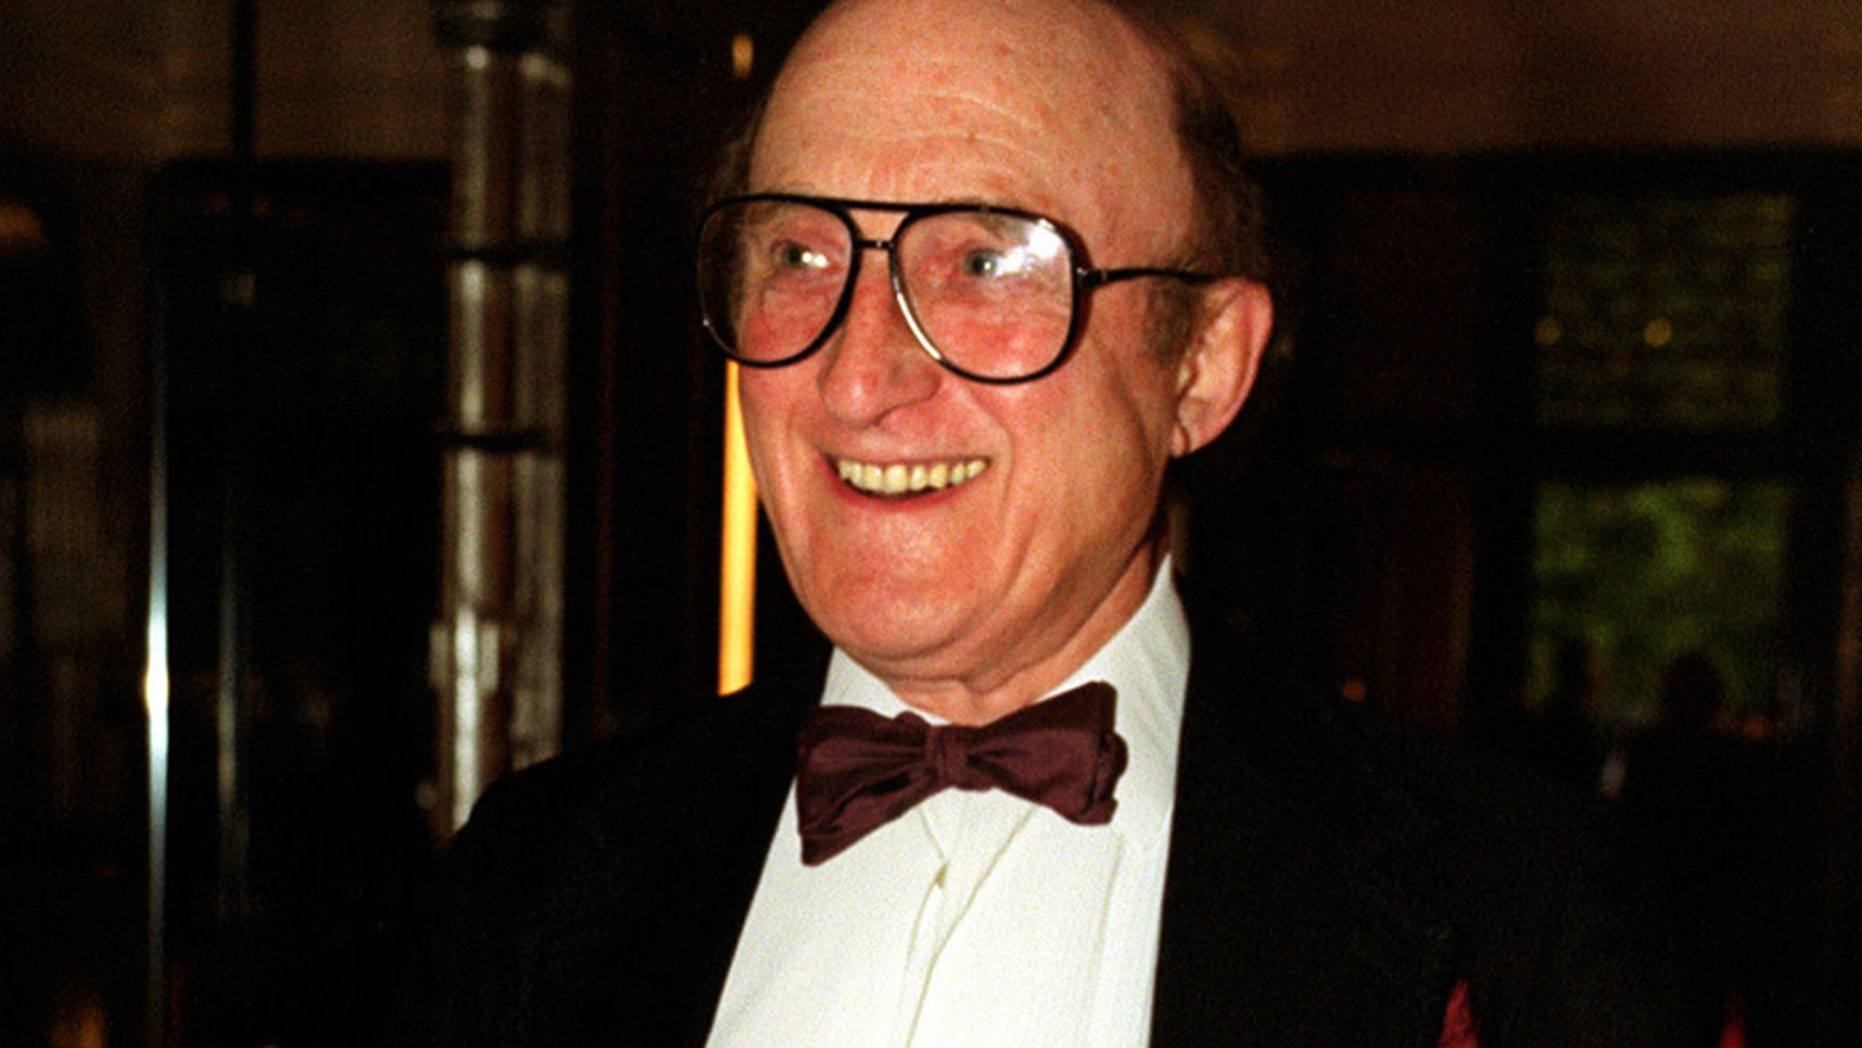 A Sept. 9, 1999 photo from files of British actor Ron Moody, attending an event in London. Ron Moody, best known for playing Fagin in the 1968 film Oliver!, has died aged 91.